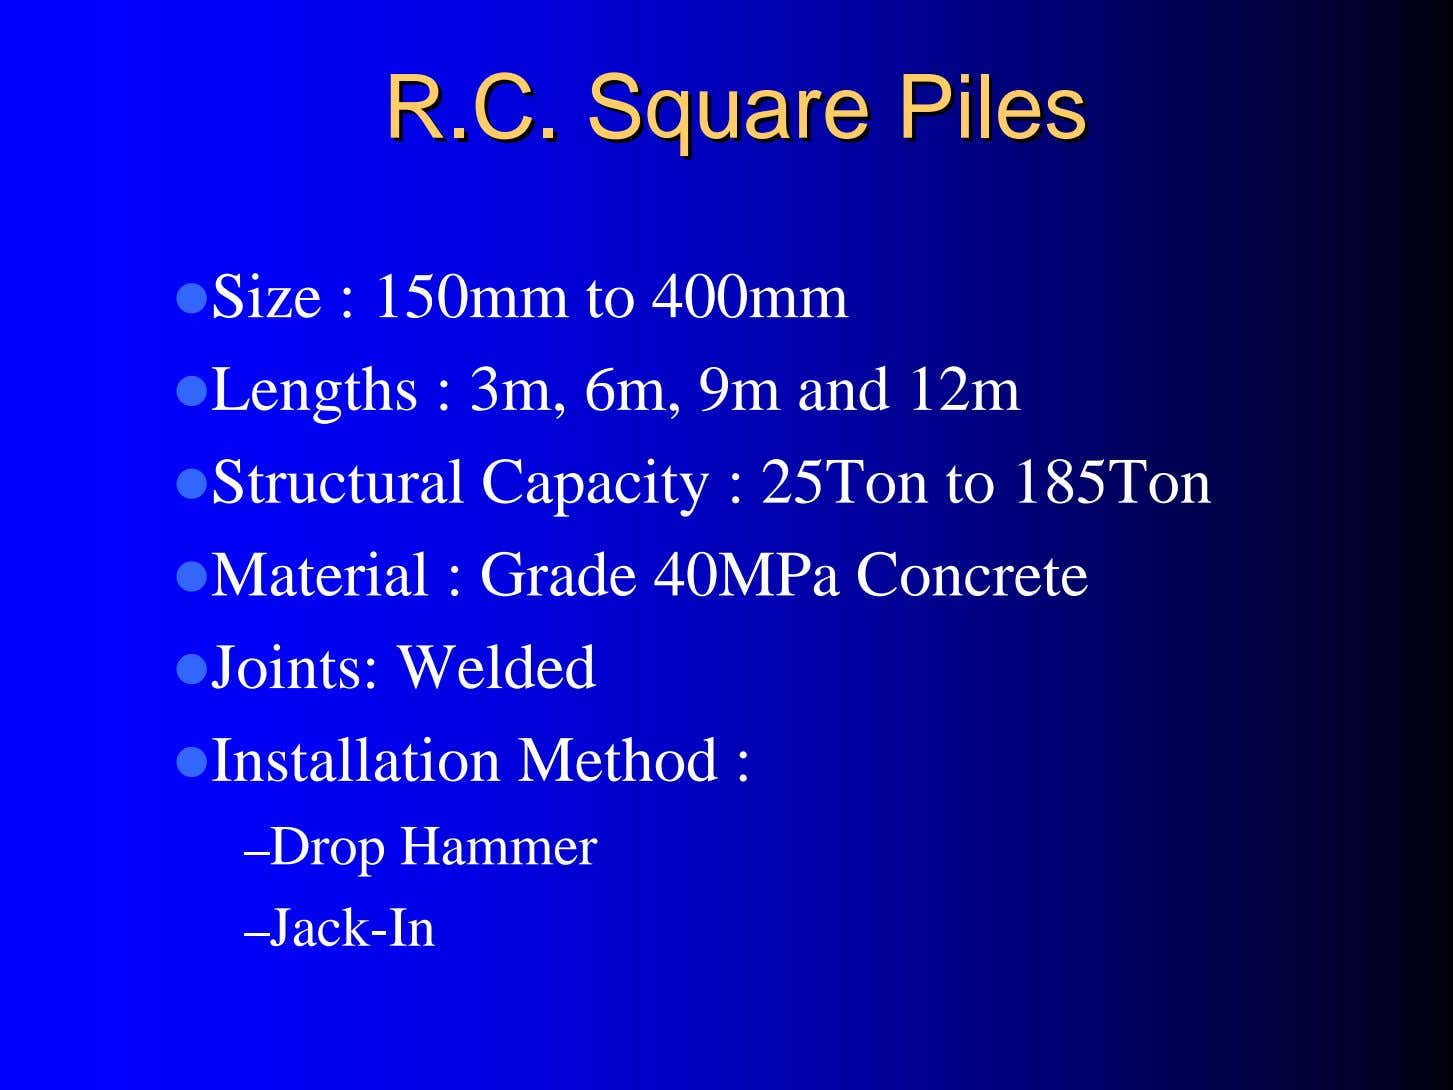 R.C.R.C. SquareSquare PilesPiles Size : 150mm to 400mm Lengths : 3m, 6m, 9m and 12m